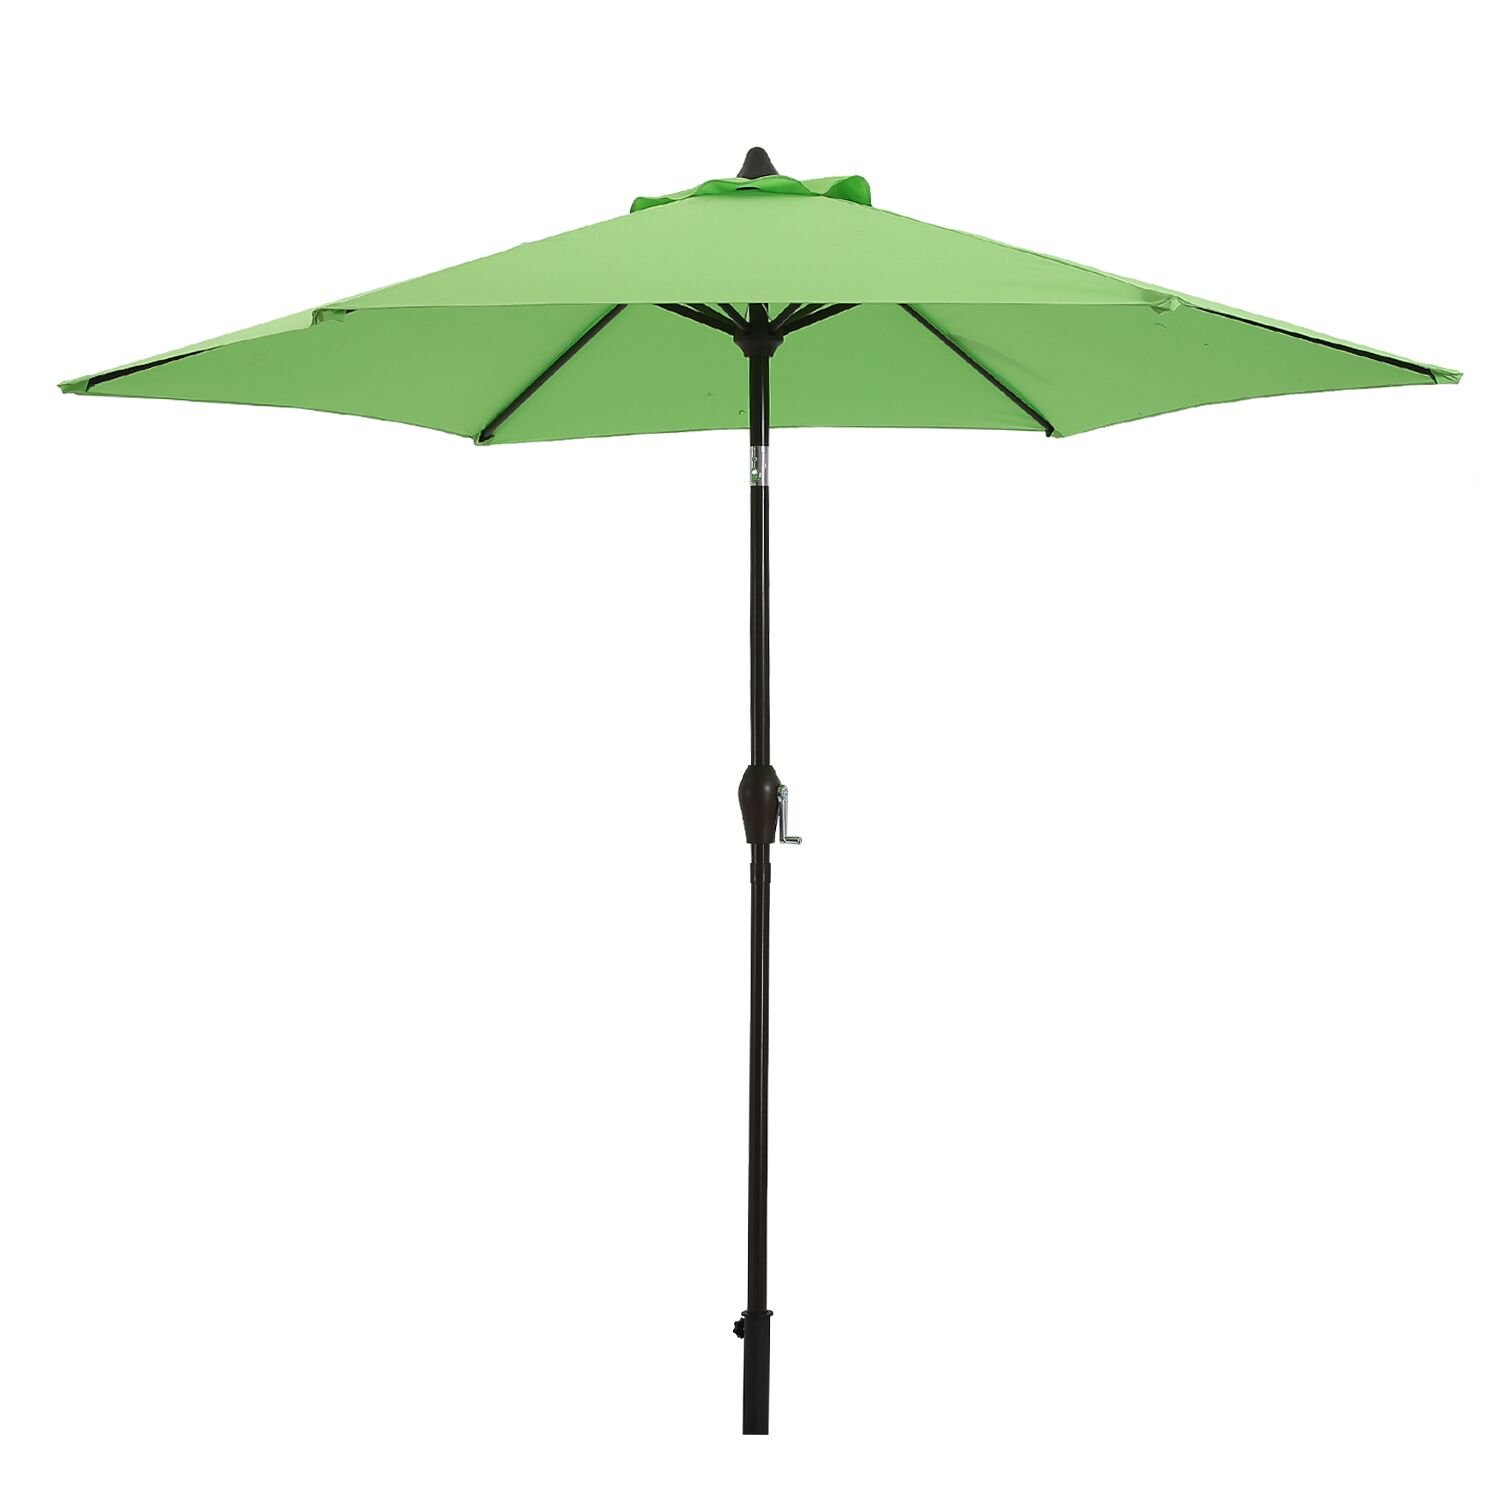 Paulla 9 Ft Patio Umbrella Outdoor Table Umbrella with Crank, 6 Ribs (Light Green)